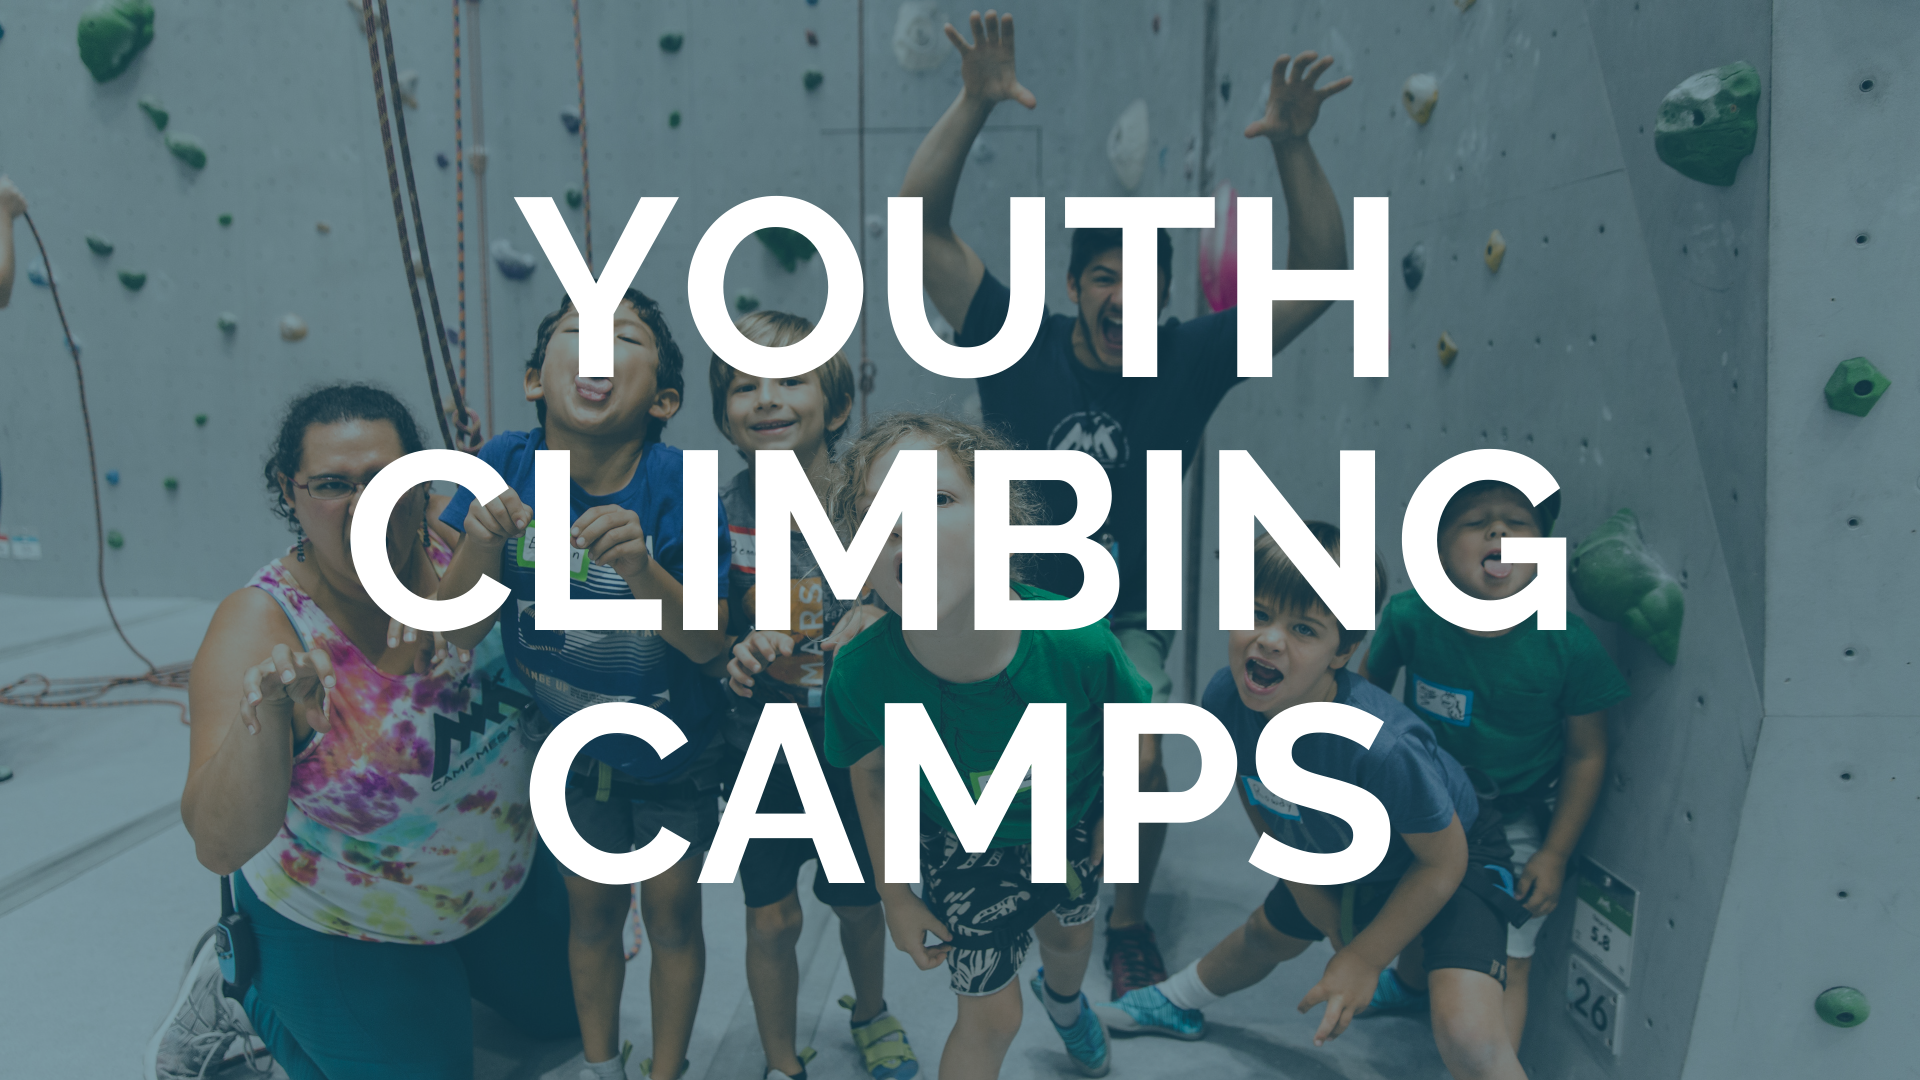 Youth Climbing Camps